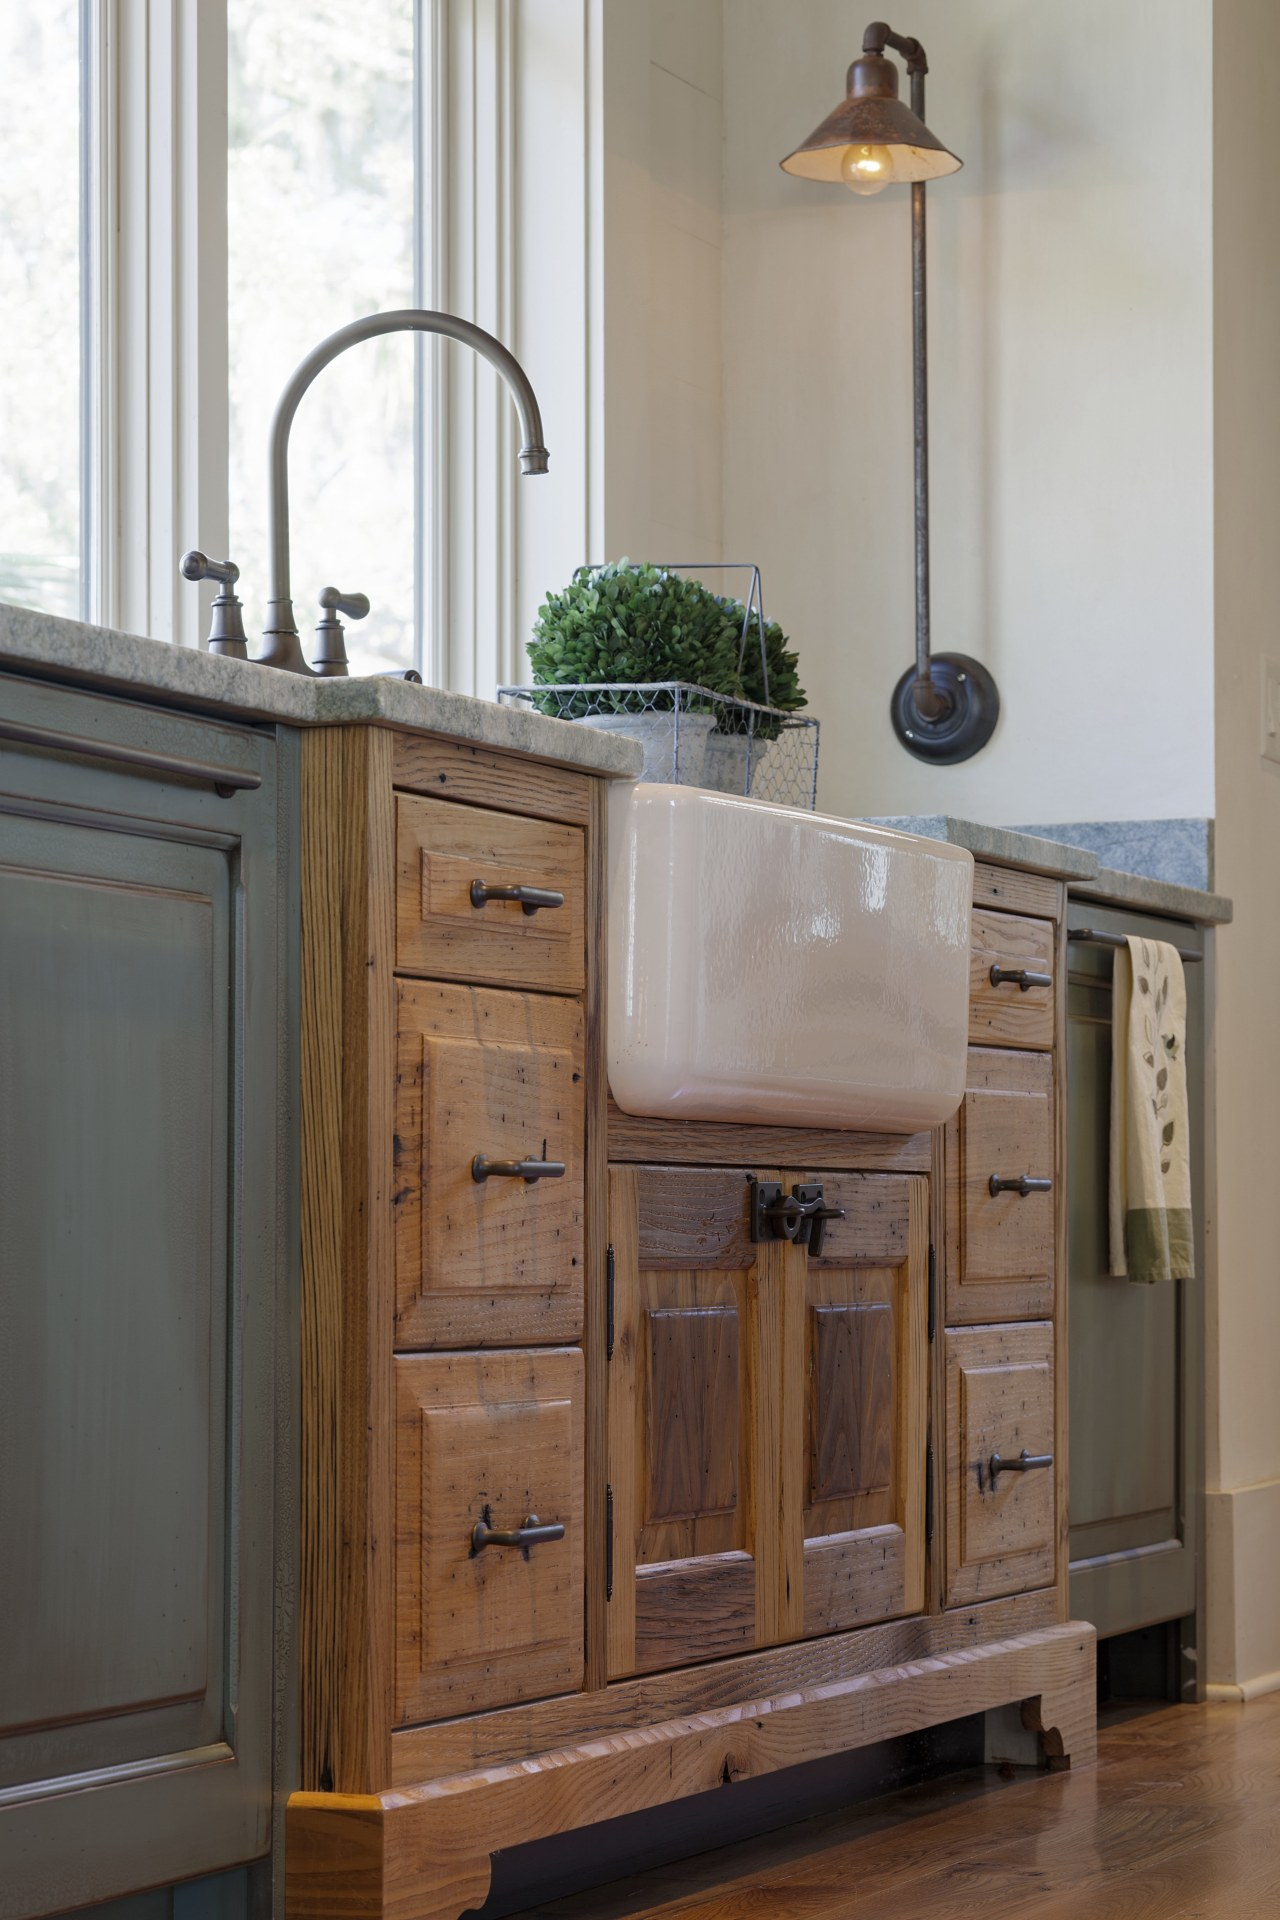 This sink cabinet juts out into the room, bathroom, bathroom accessory, bathroom cabinet, cabinetry, chest of drawers, countertop, cuisine classique, drawer, floor, furniture, hardwood, kitchen, room, sideboard, sink, wood, wood stain, gray, brown